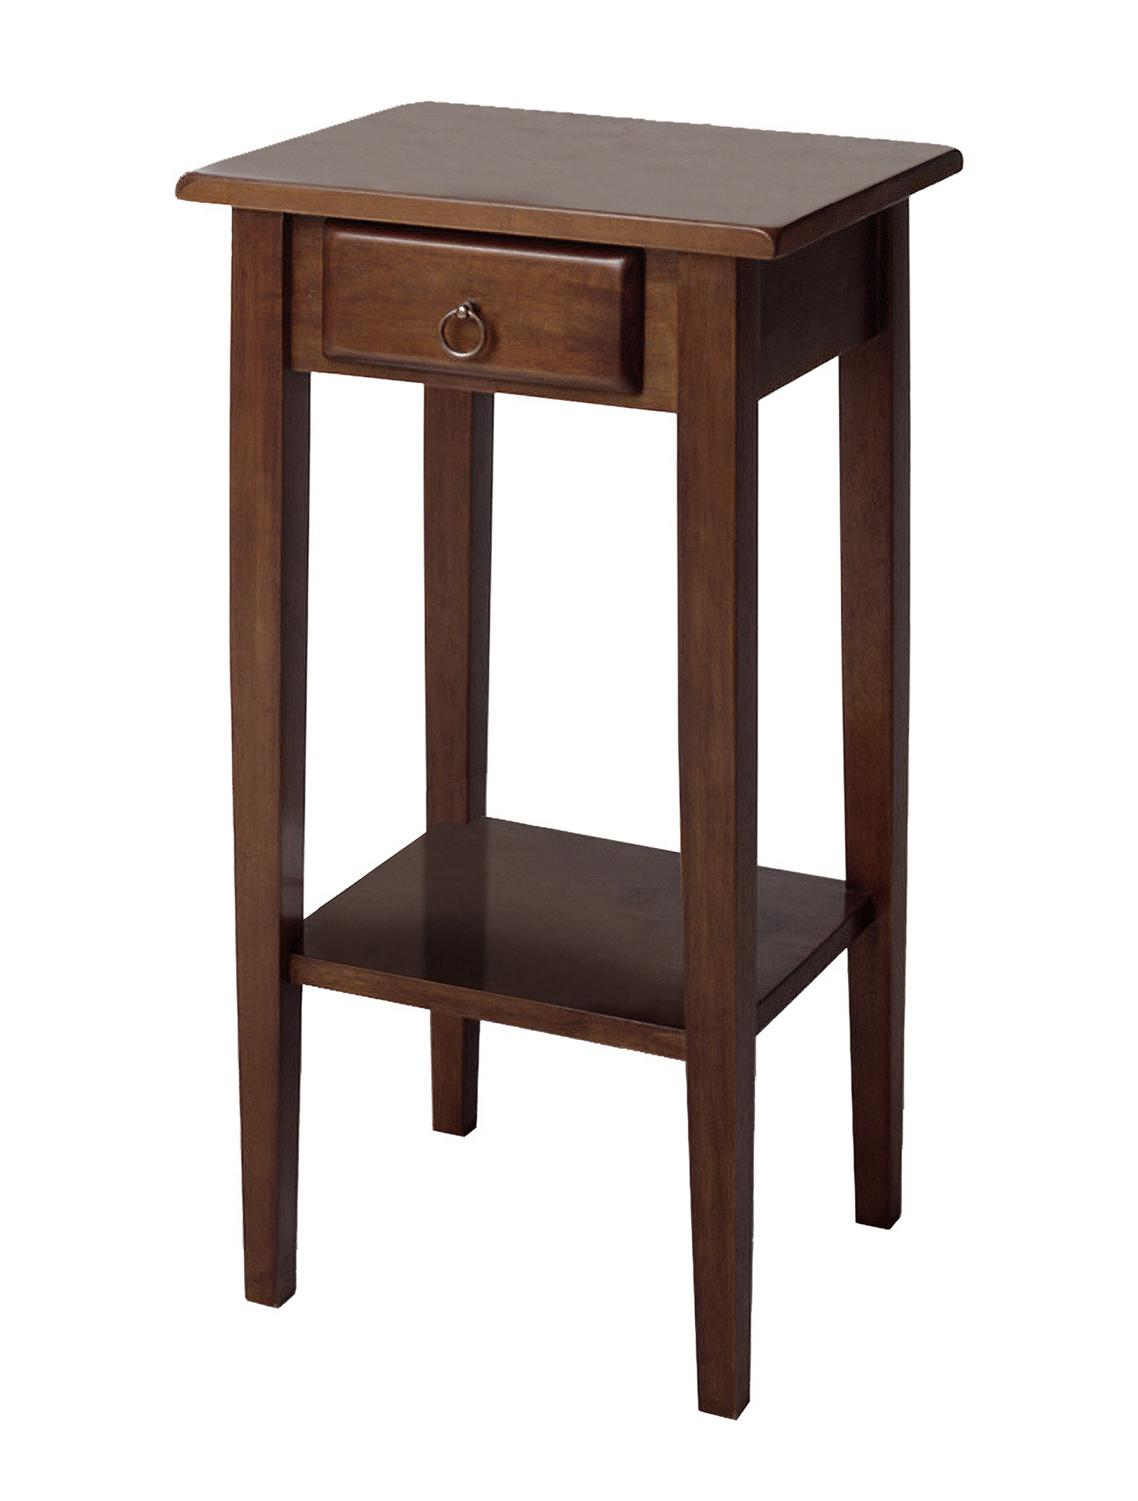 winsome regalia accent table with drawer shelf home goods the eryn round drawers small garden wooden kitchen and chairs inch christmas tablecloth black square coffee glass metal